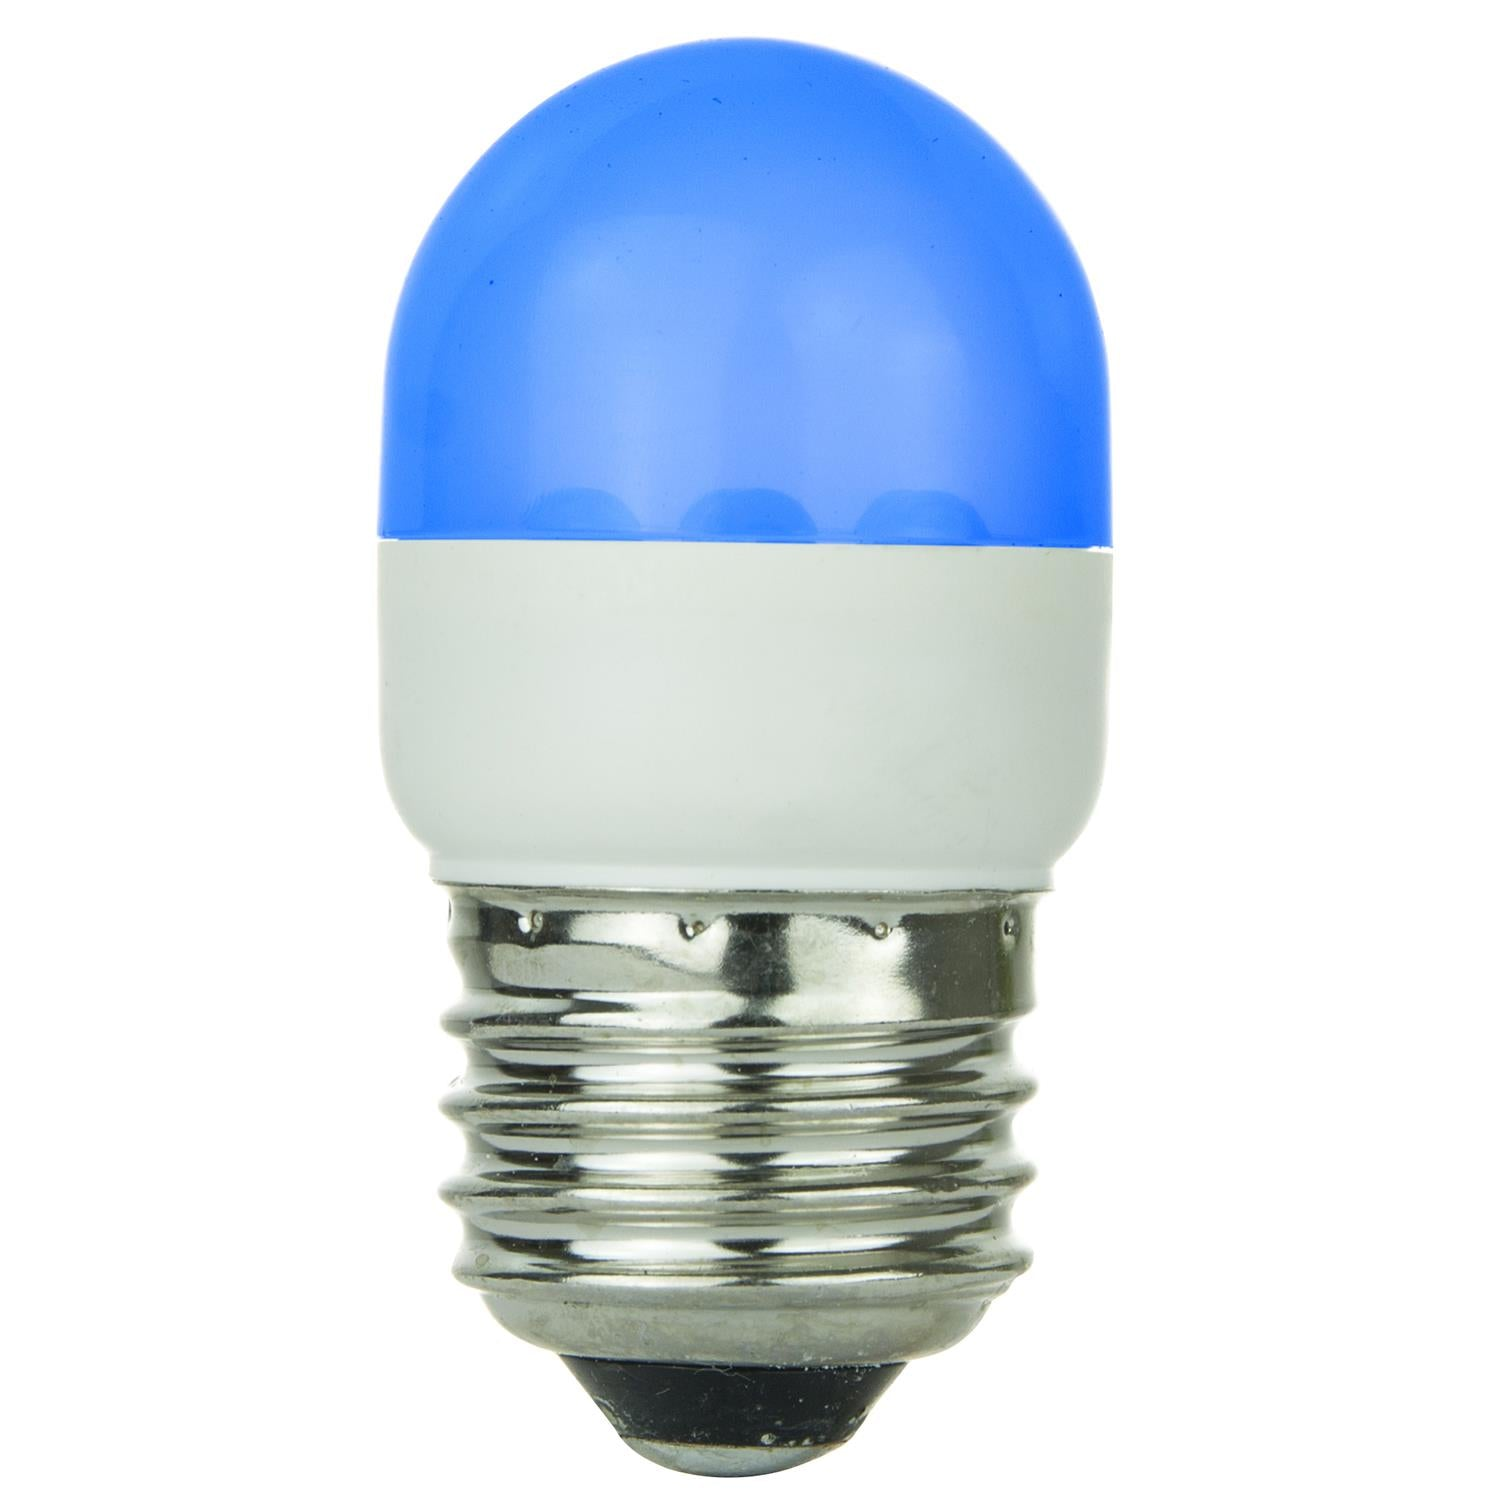 SUNLITE Blue T10 LED 1W 120V E26 Medium Base - Sign & Indicator Bulbs